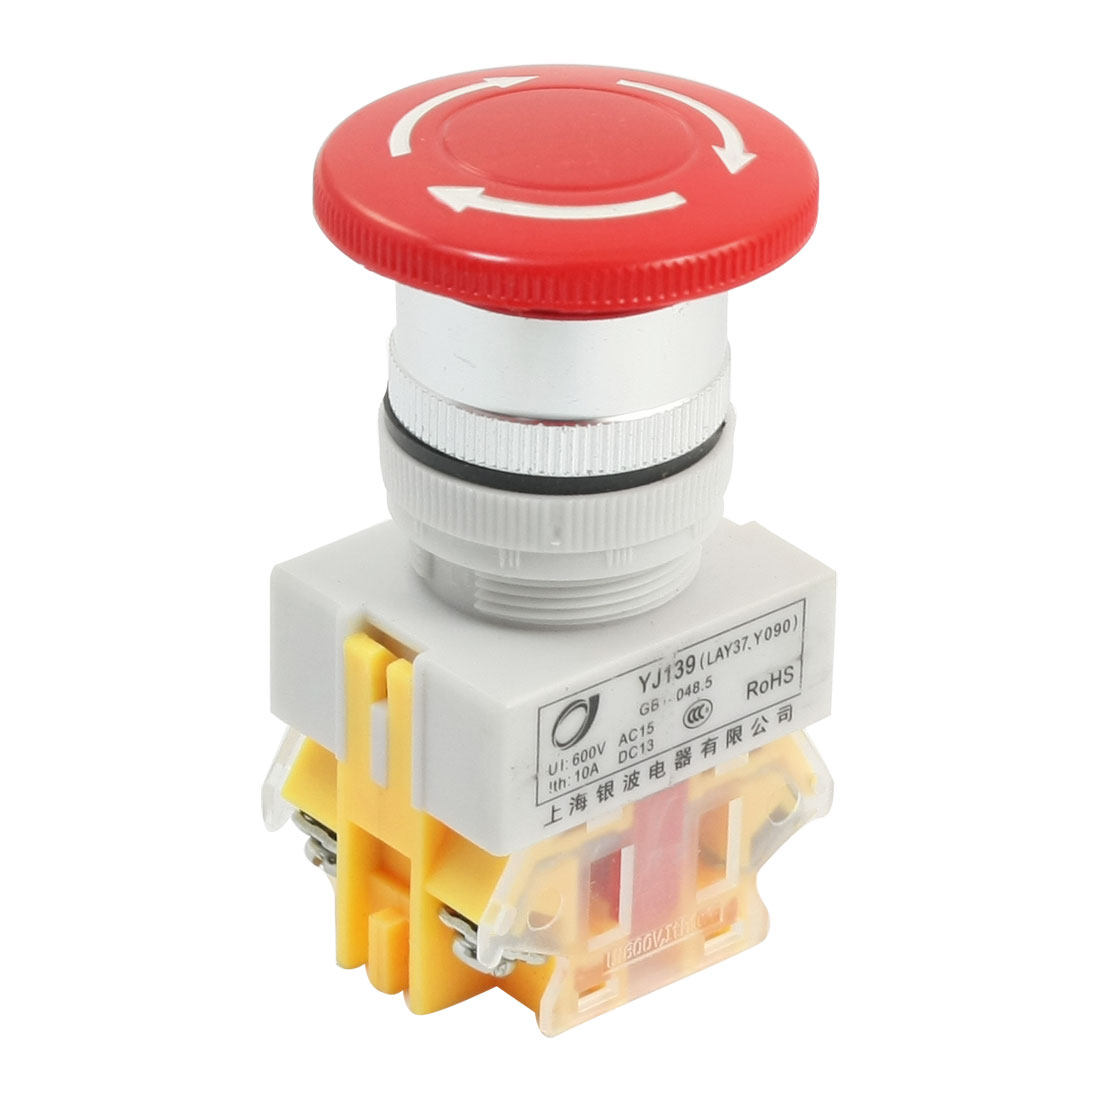 600V 10A NO NC Emergency Stop Latching Red Mushroom Push Button Switch